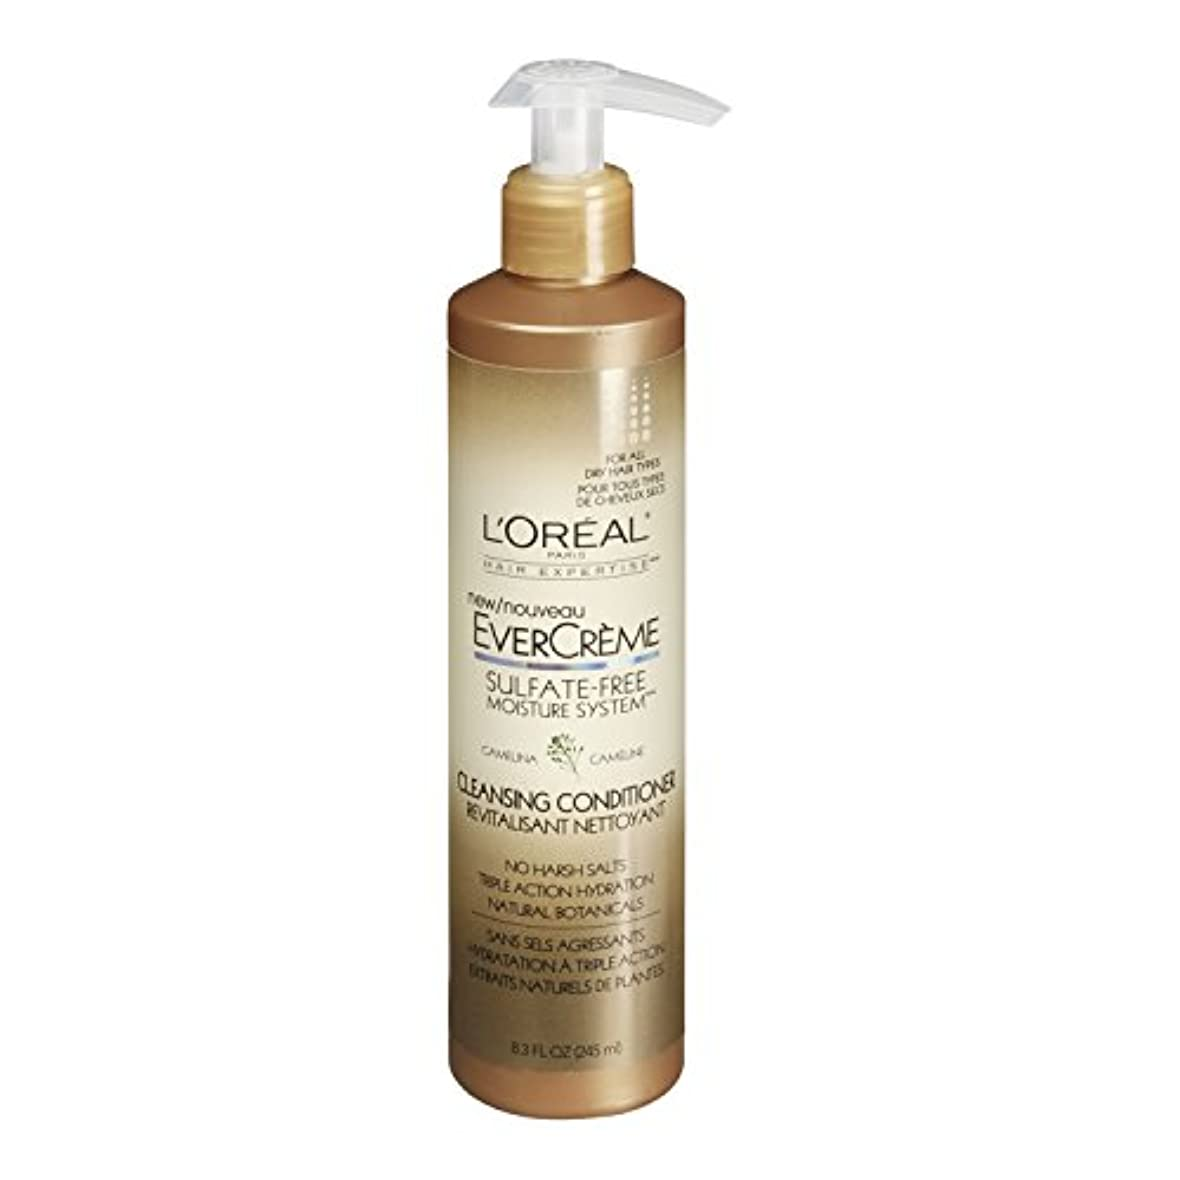 鮫歩道聴くL'Oreal Paris EverCreme Sulfate-Free Moisture System Cleansing Conditioner, 8.3 fl. Oz. by L'Oreal Paris Hair...